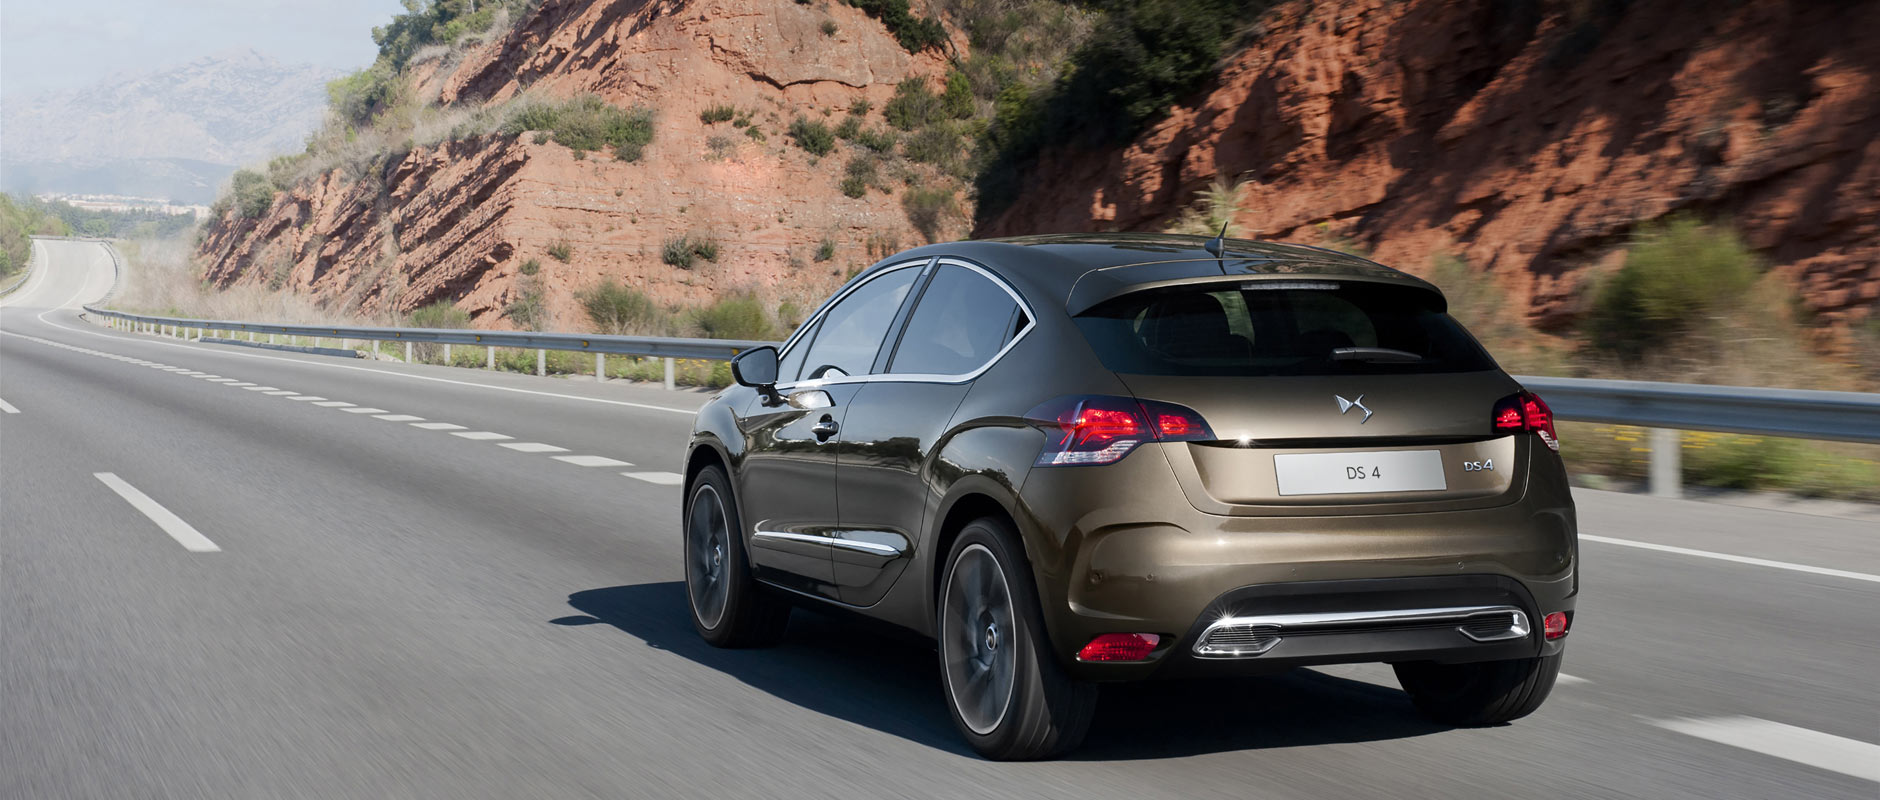 behavior-citroen-ds4